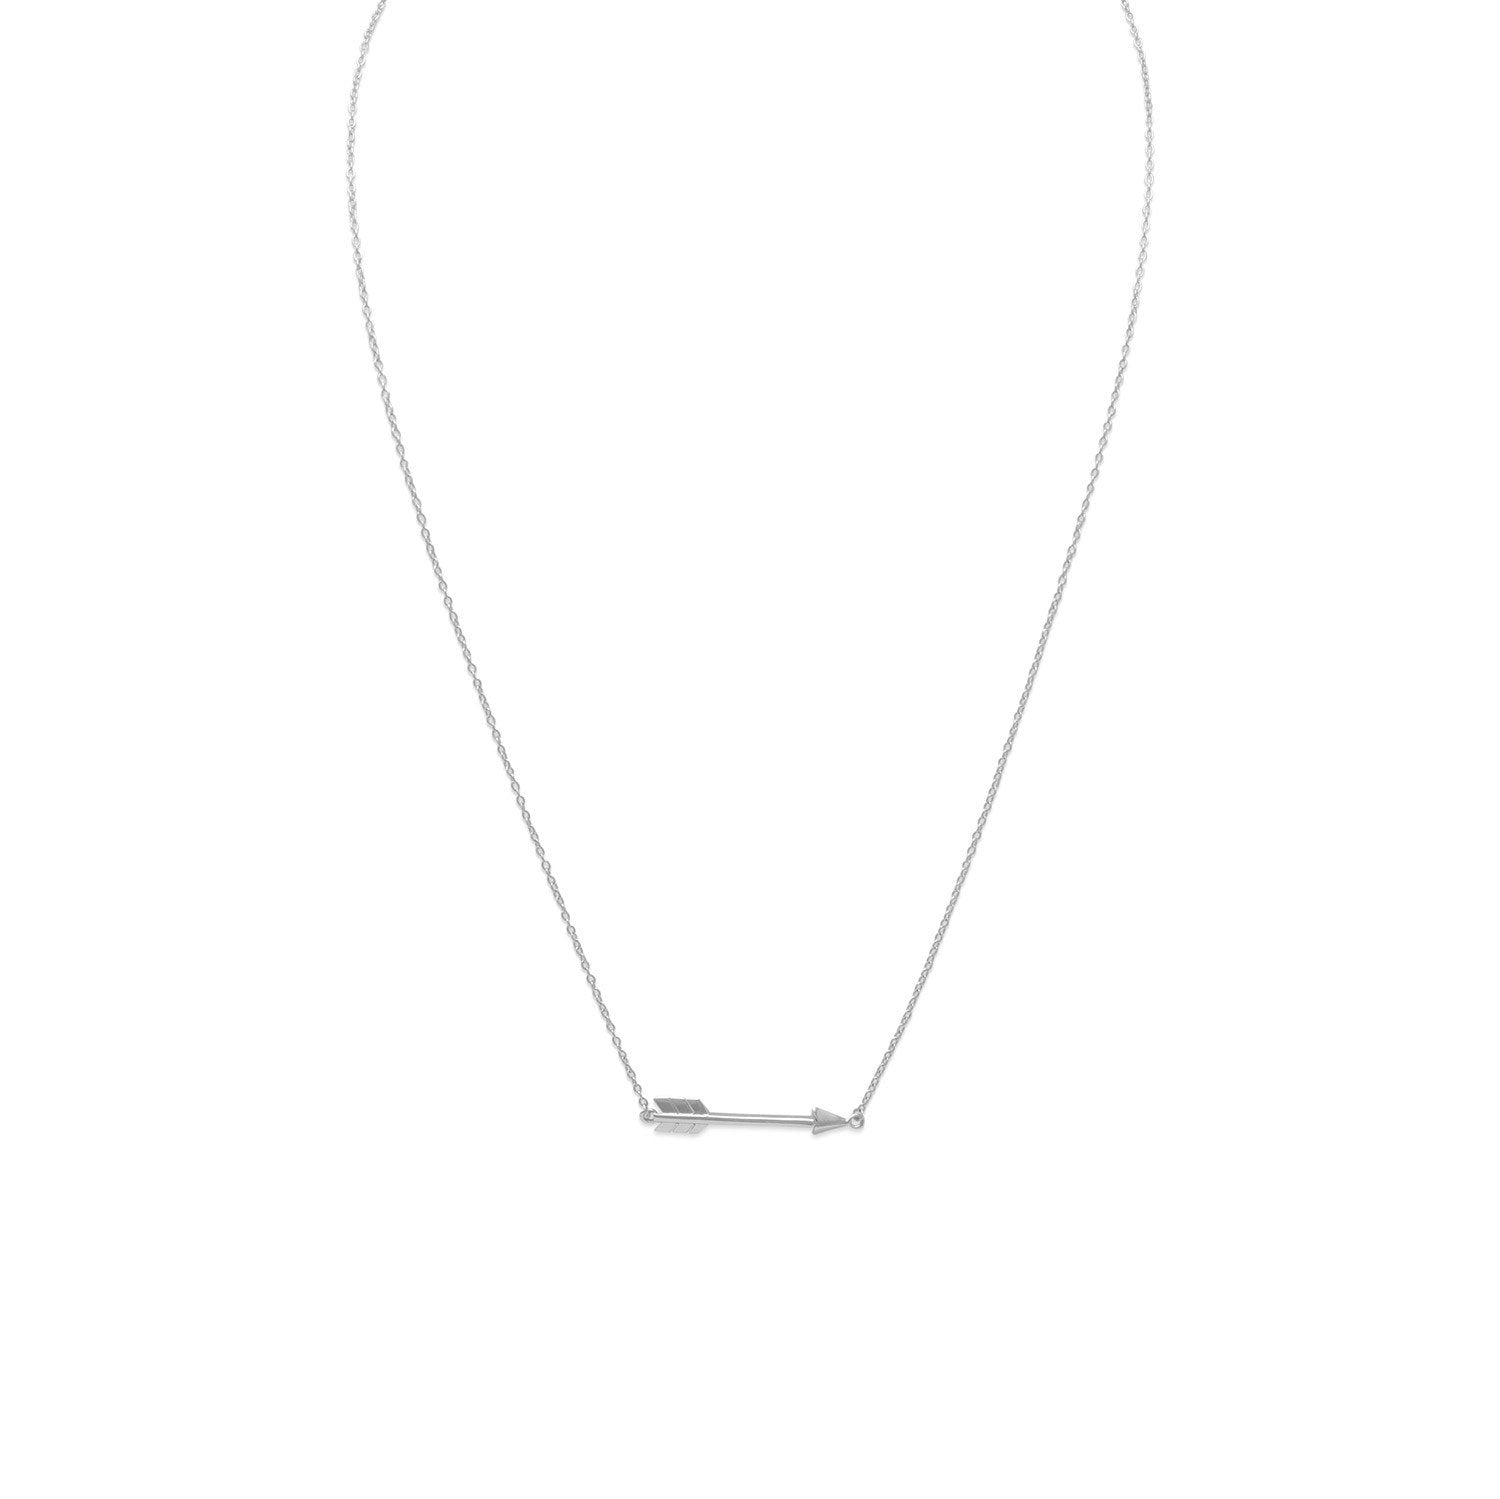 Aim High Arrow Necklace